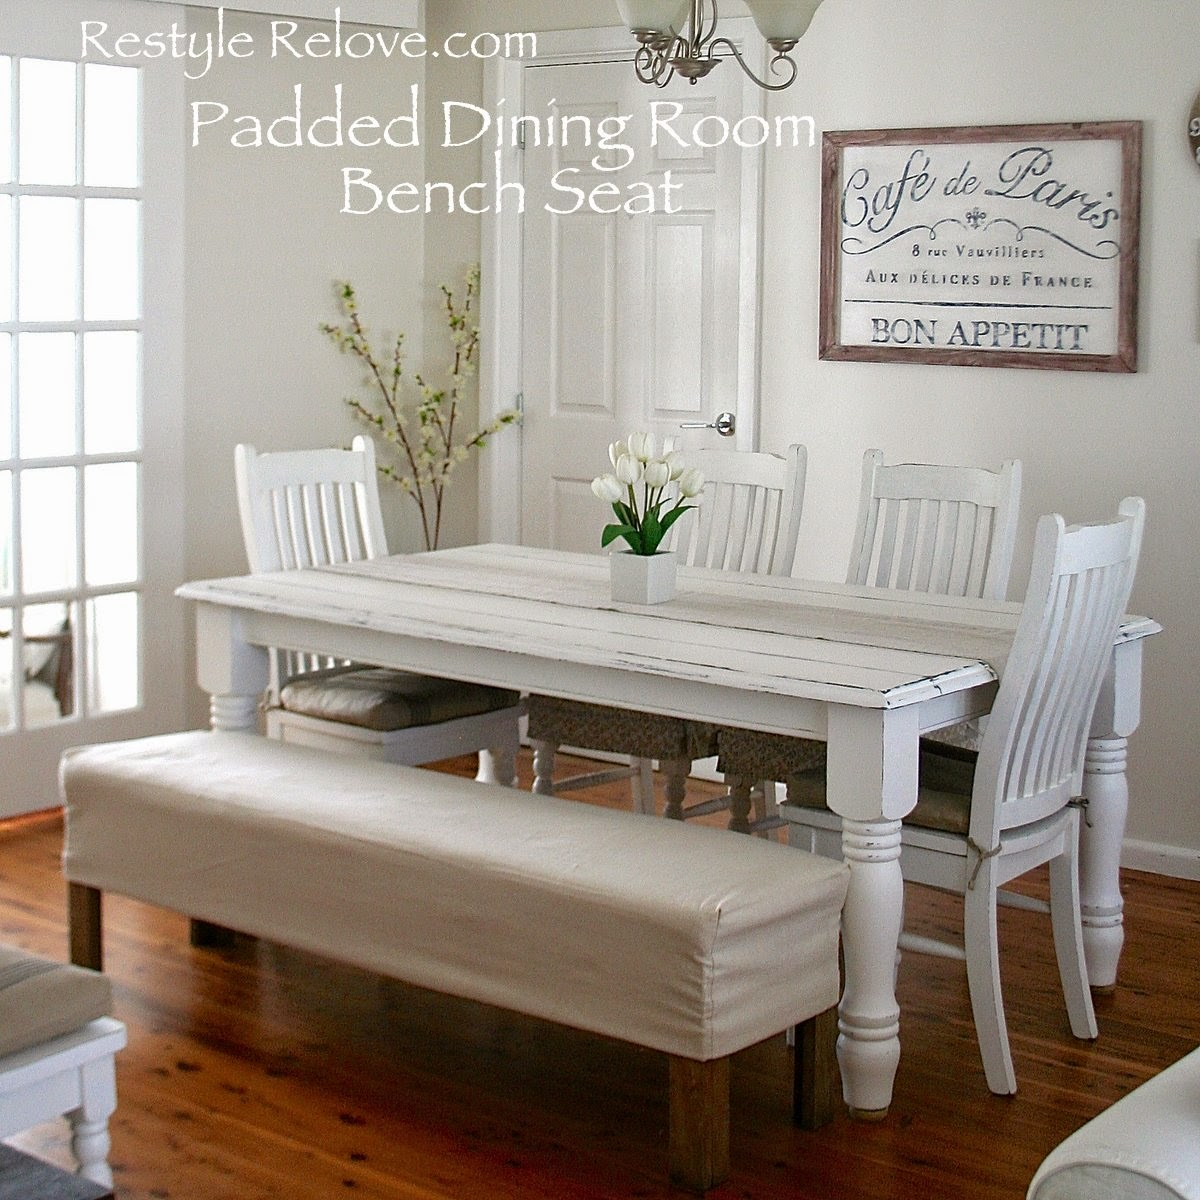 how to make padded dining room bench kitchen table bench seat Padded Dining Room Bench Seat with Removable Washable Drop Cloth Cover